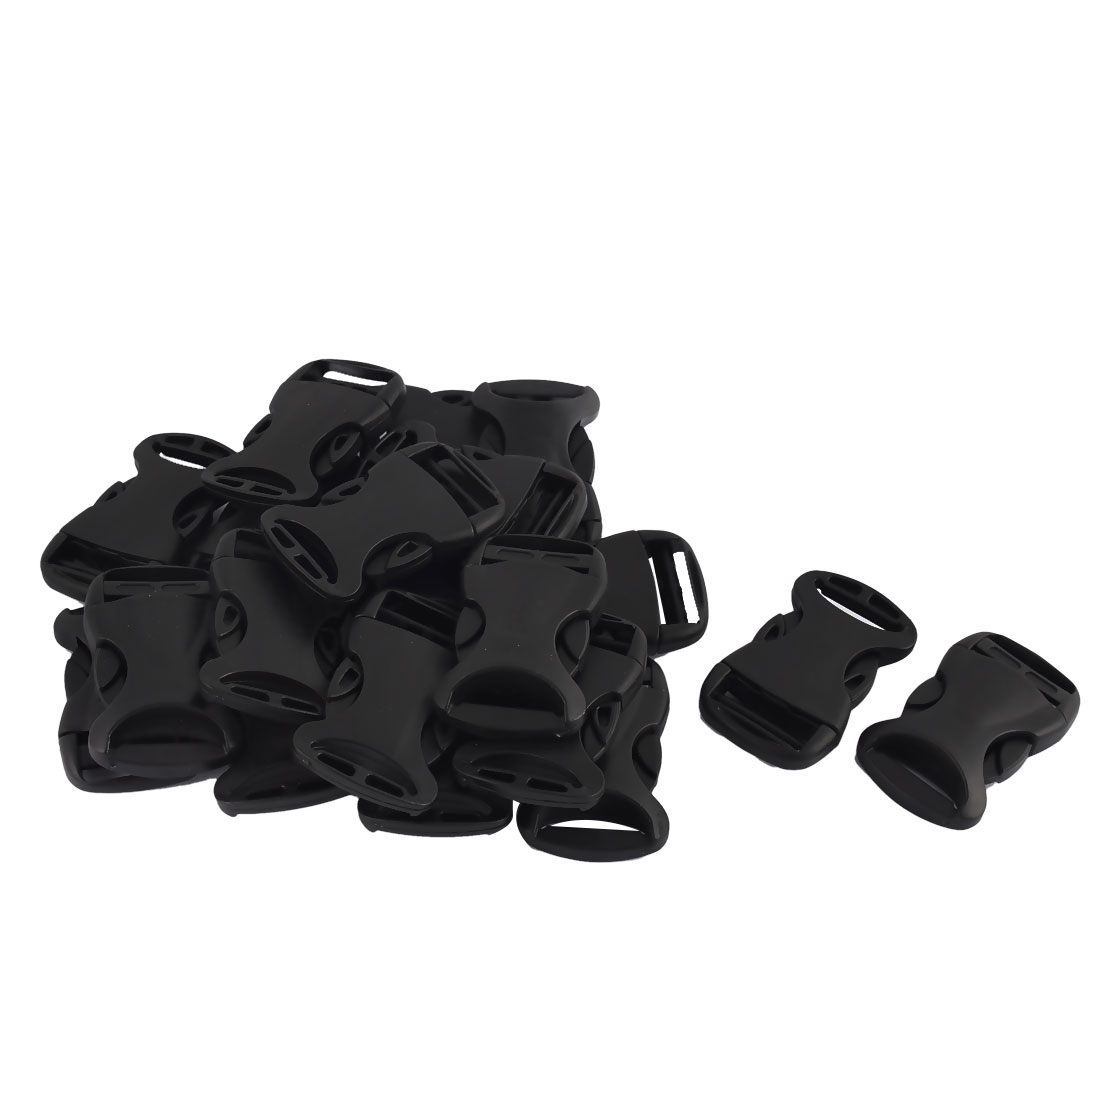 Suitcase Backpack Strap Clip Plastic Side Quick Release Buckles Black 20pcs